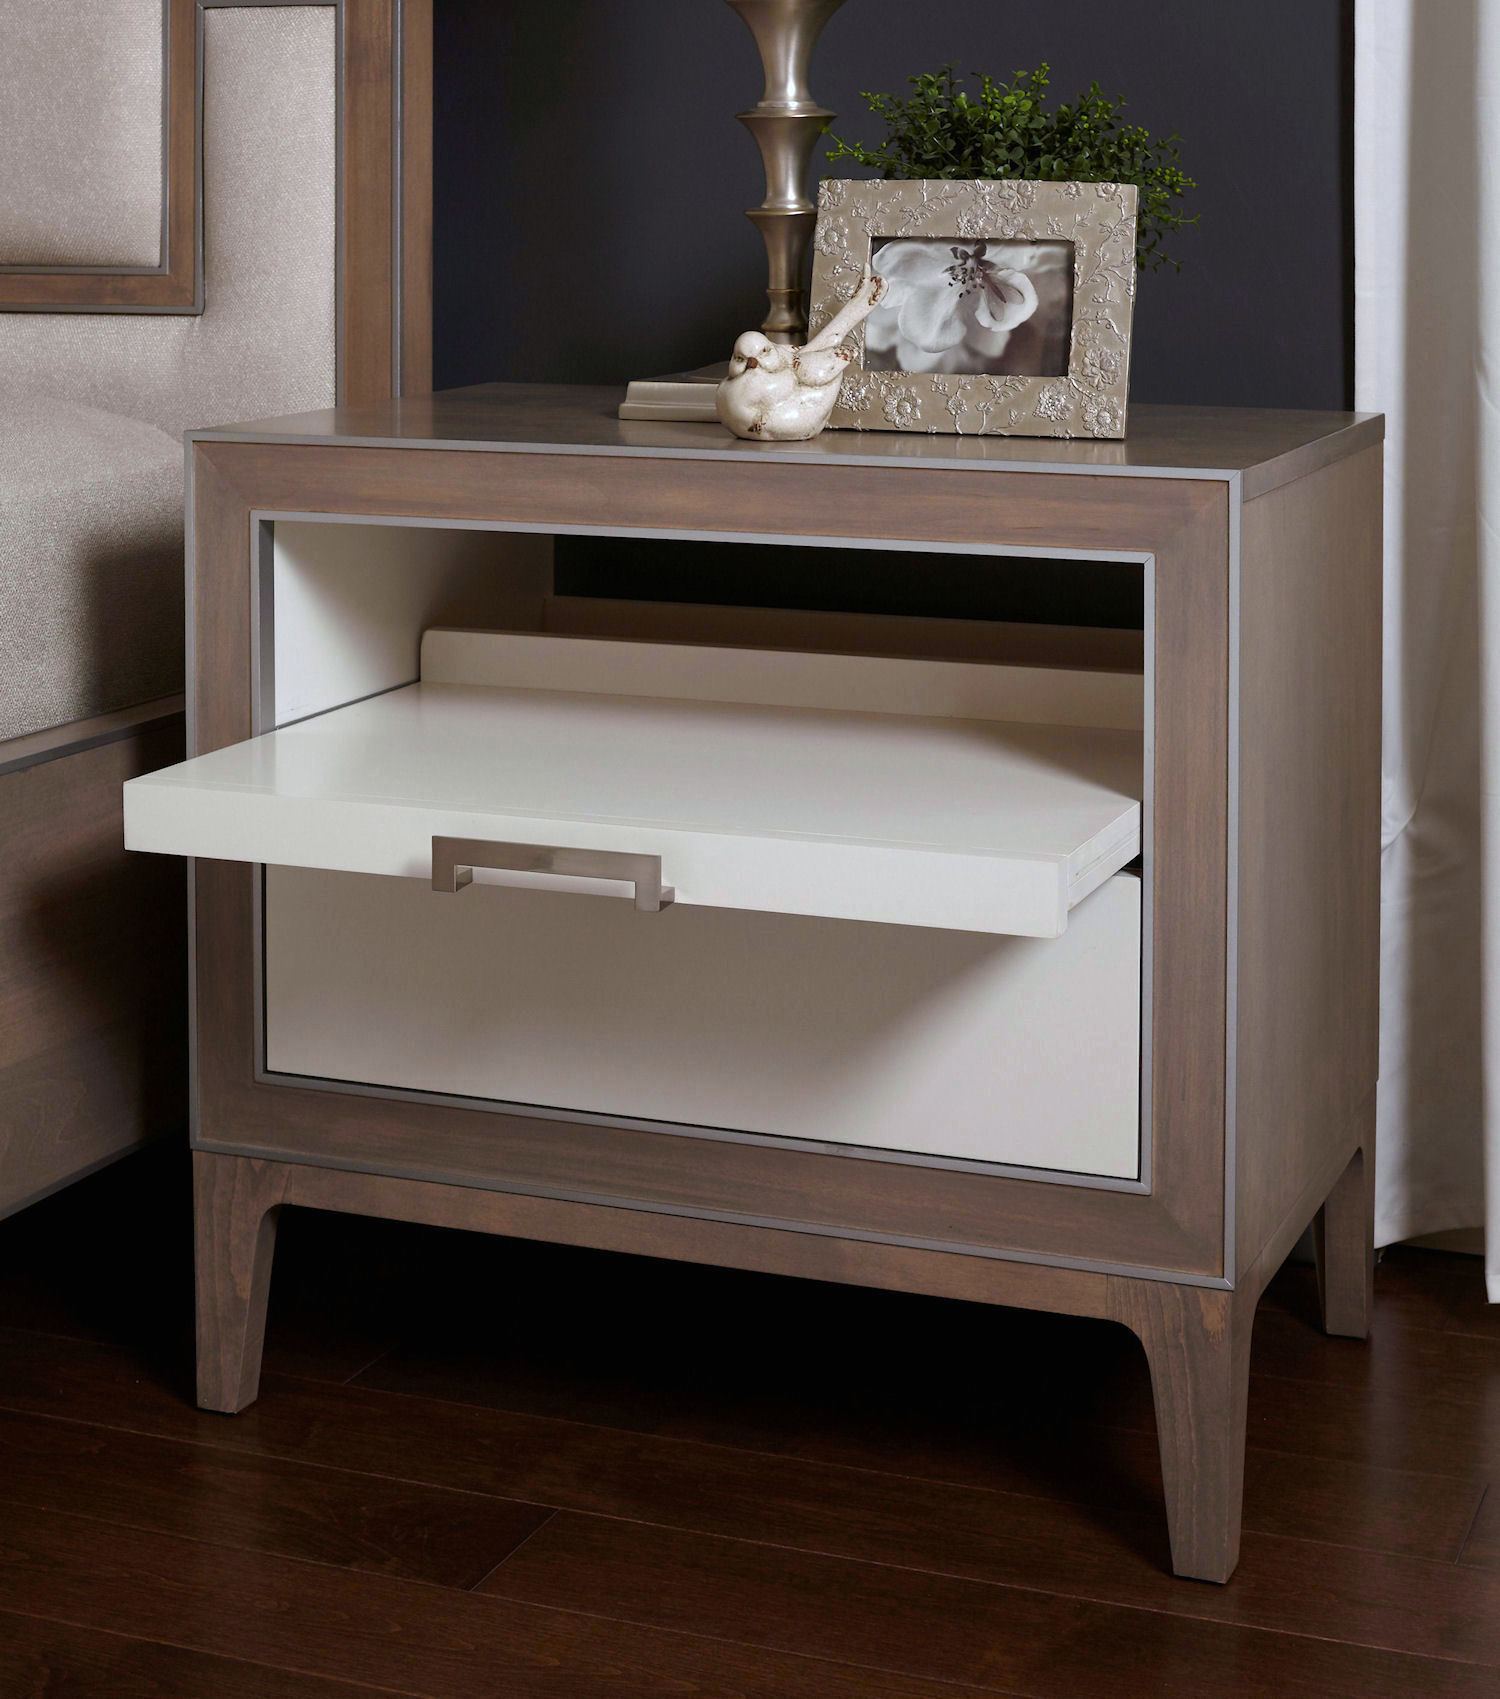 8013 Night Stand With Pullout Shelf